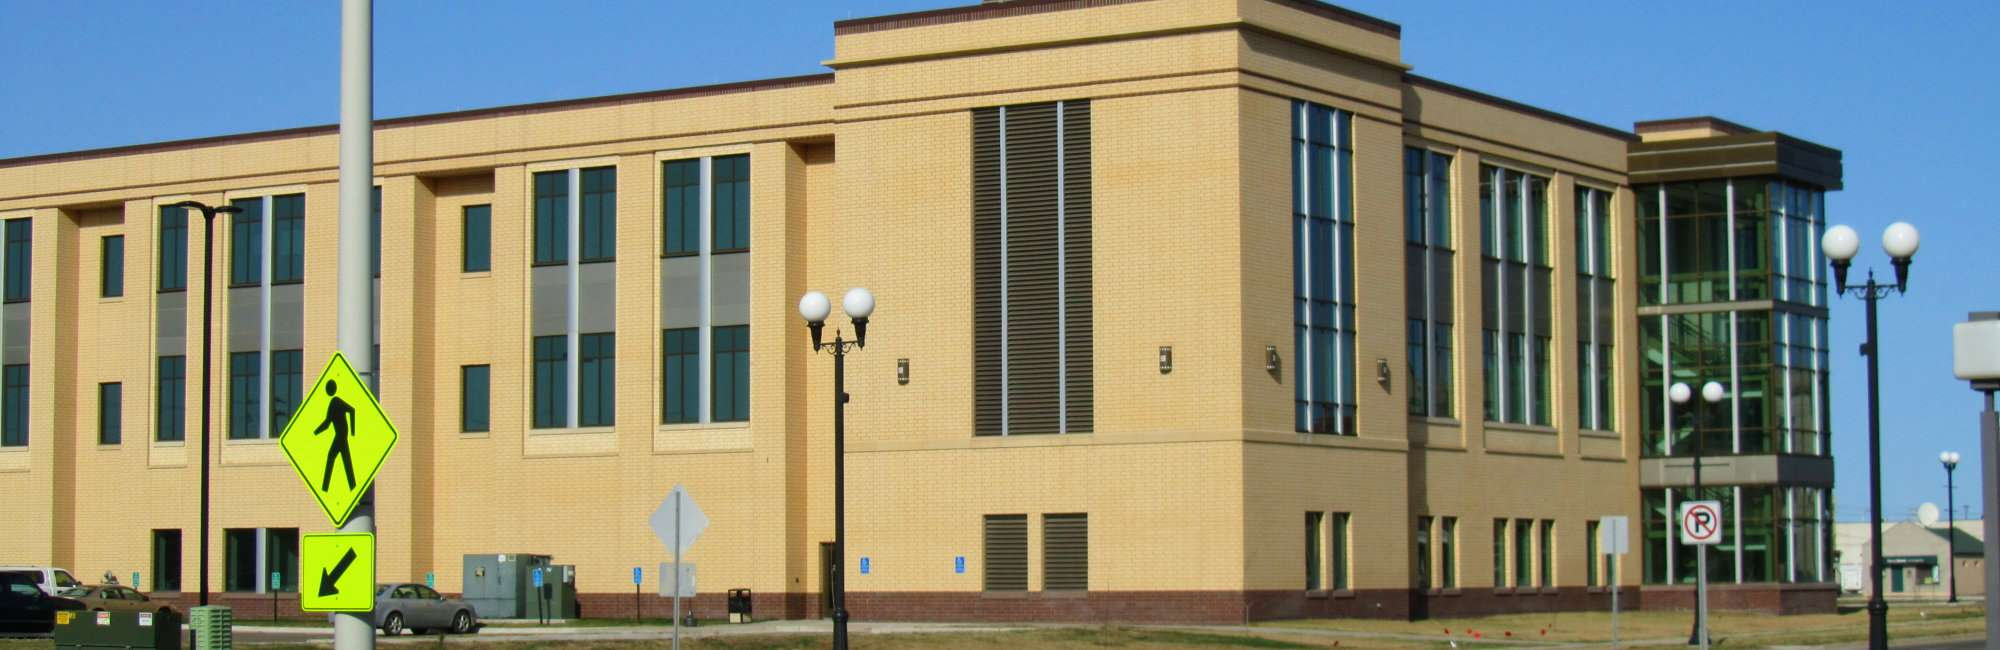 Crow Wing County - Brainerd Mn City Services - Support Services Pertaining To Crow Wing County Civil Court Schedule